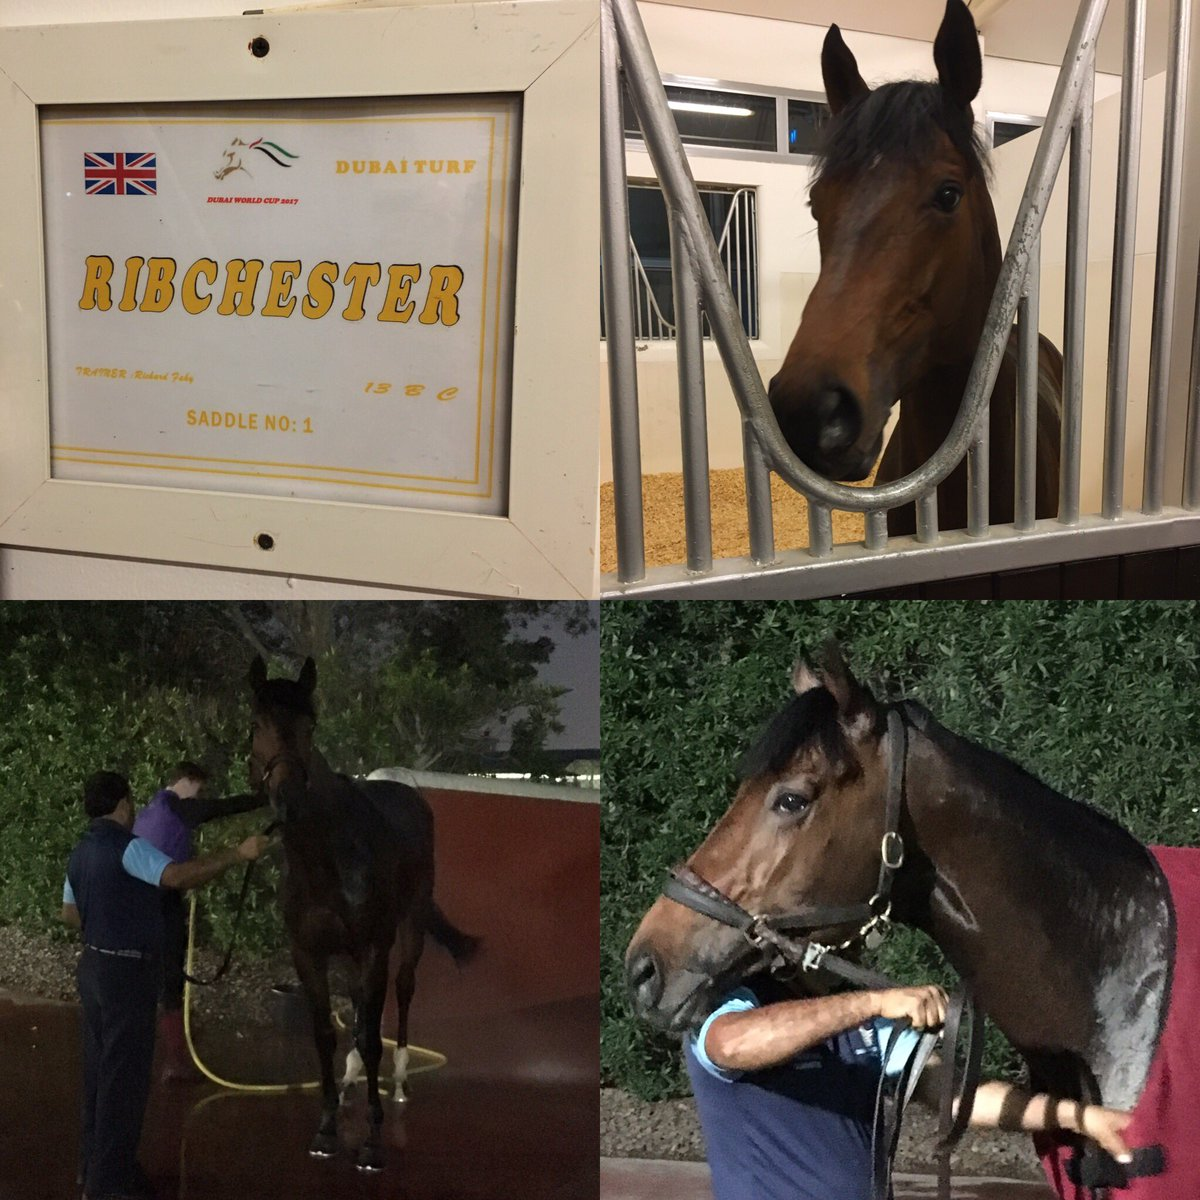 Our lad Matt & his Dubai groom Davey are doing a great job looking after him #Ribchester